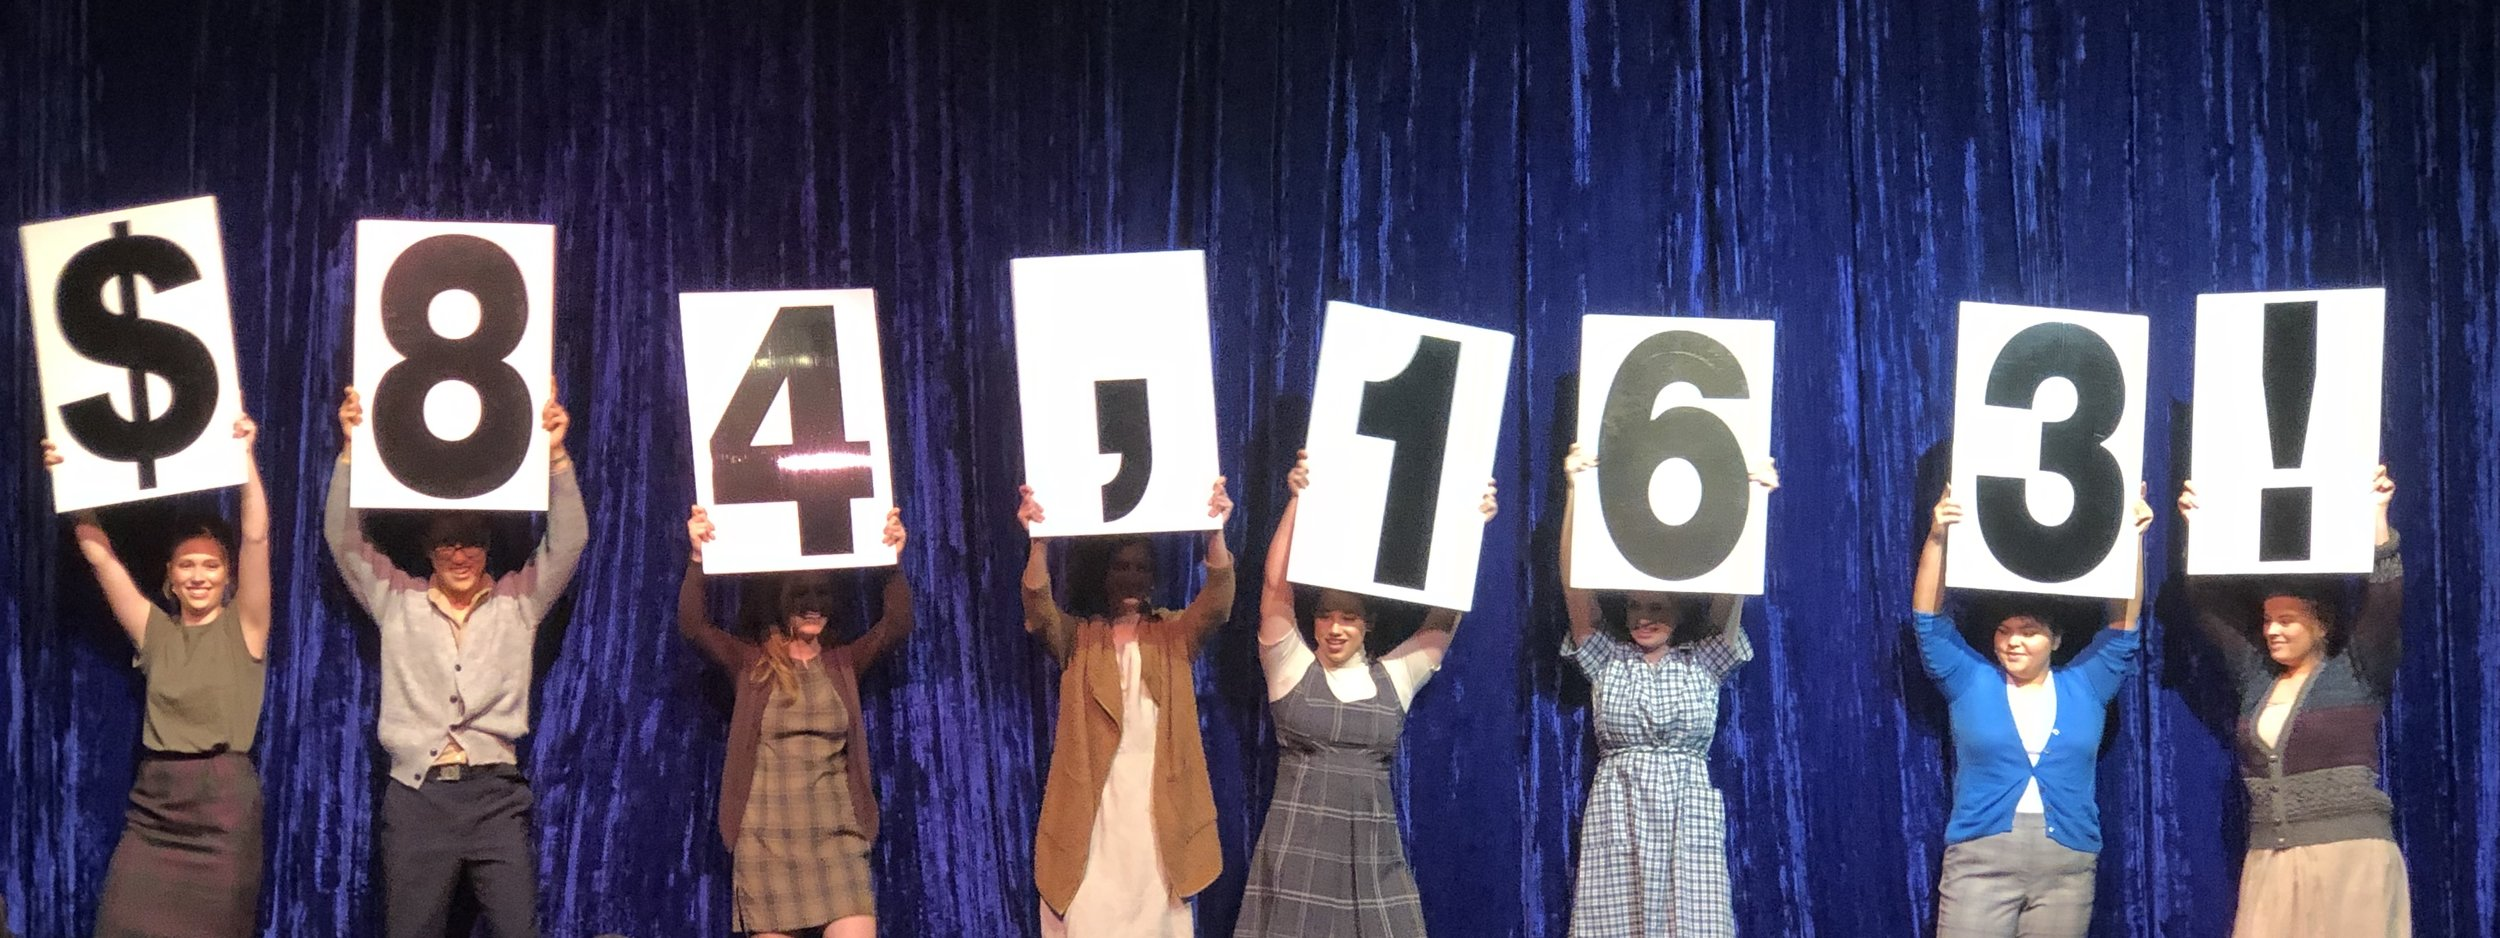 The number raised at Gala.jpg